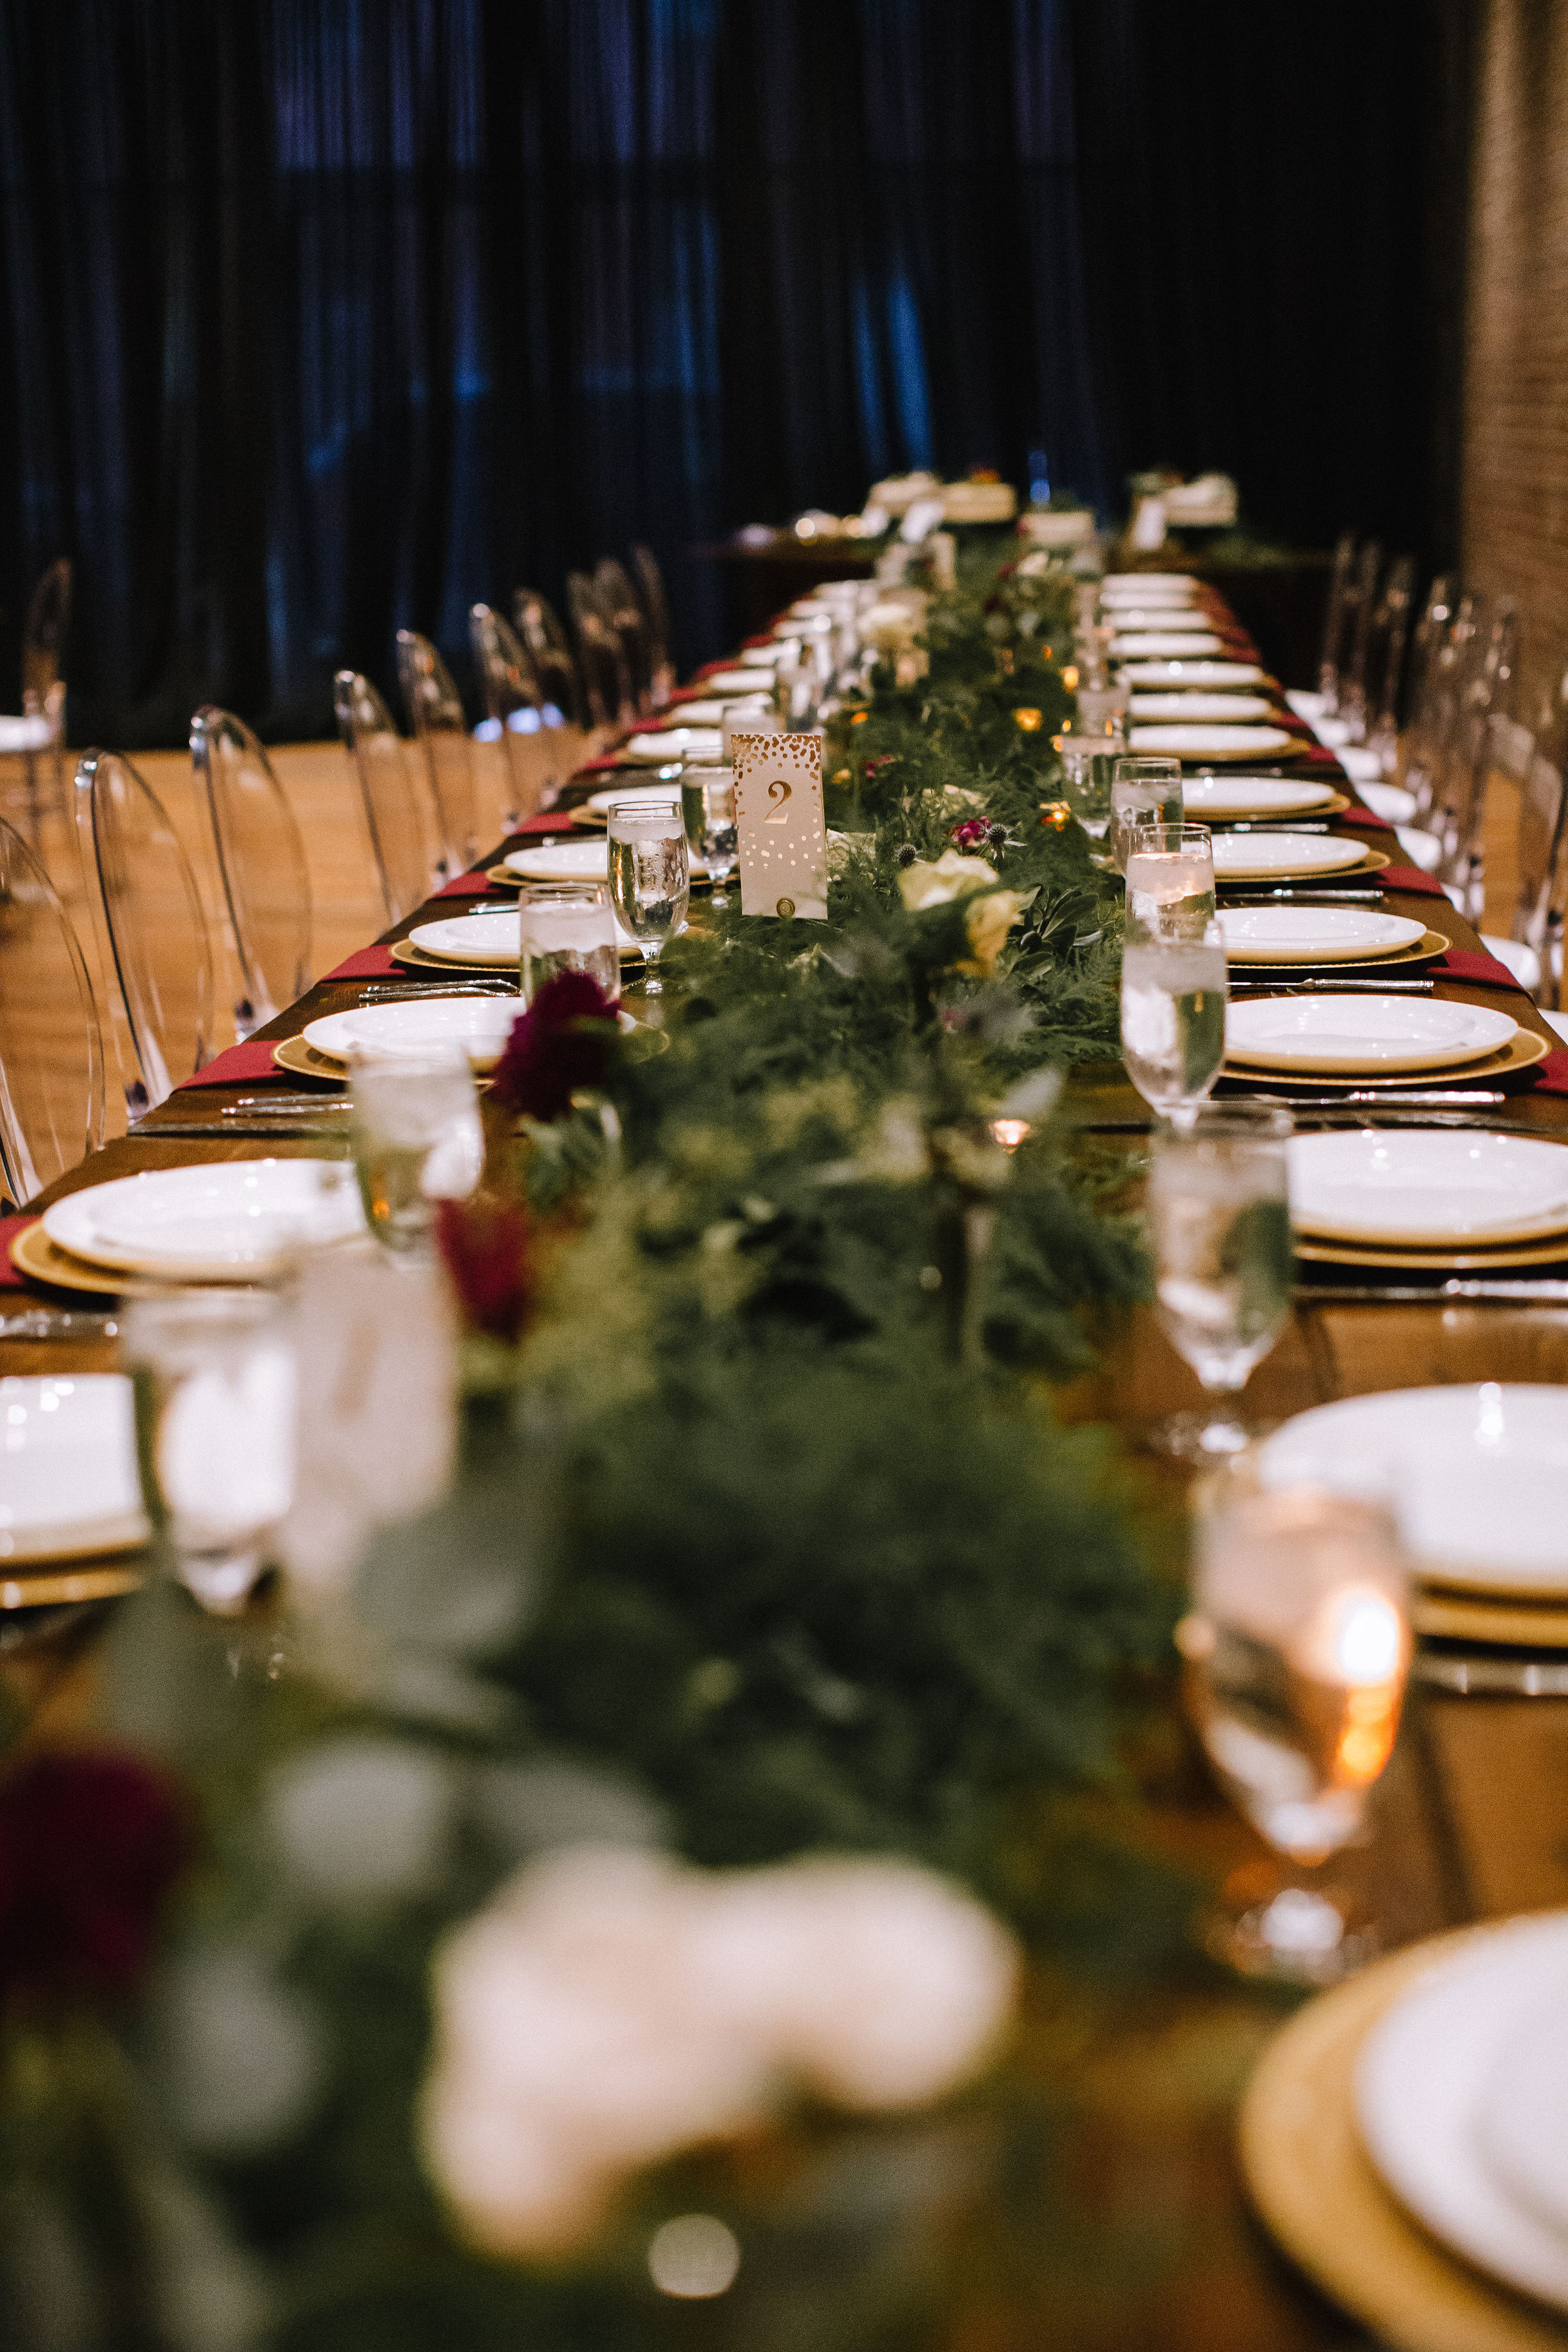 Wedding table decor with greenery and candles for Pittsburgh wedding at Studio Slate planned by Exhale Events. Find more wedding inspiration at exhale-events.com!